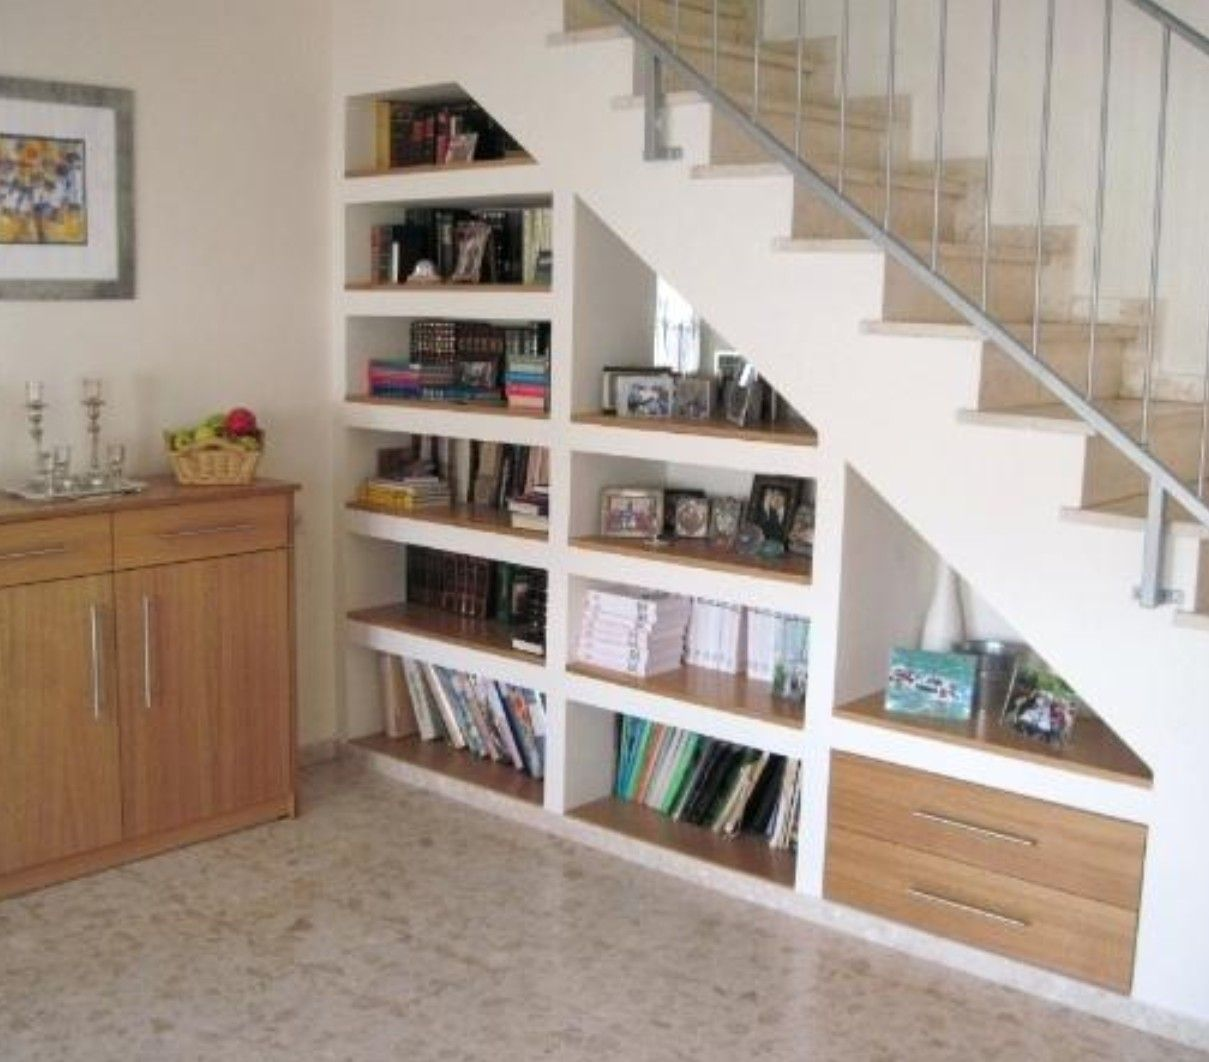 Pin By Lofly On Hallway Under Basement Stairs Stair Bookshelf